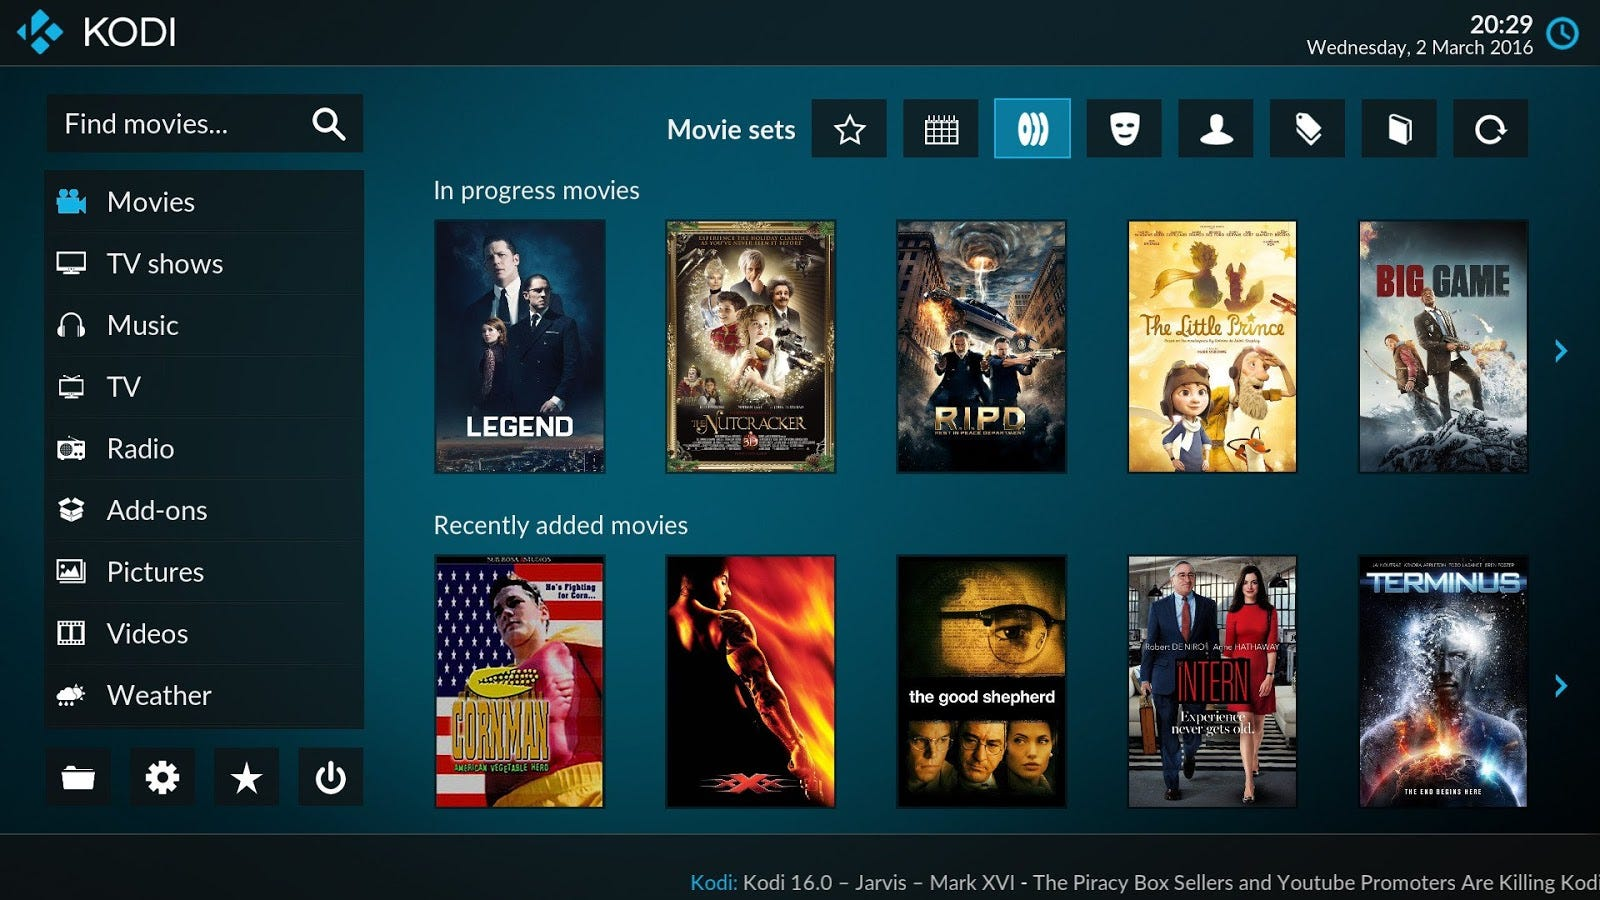 Amazon s Fire TV streaming devices and Kodi  s semi-legal media player  software have been a popular combination for years. With that in mind b91bd3a54